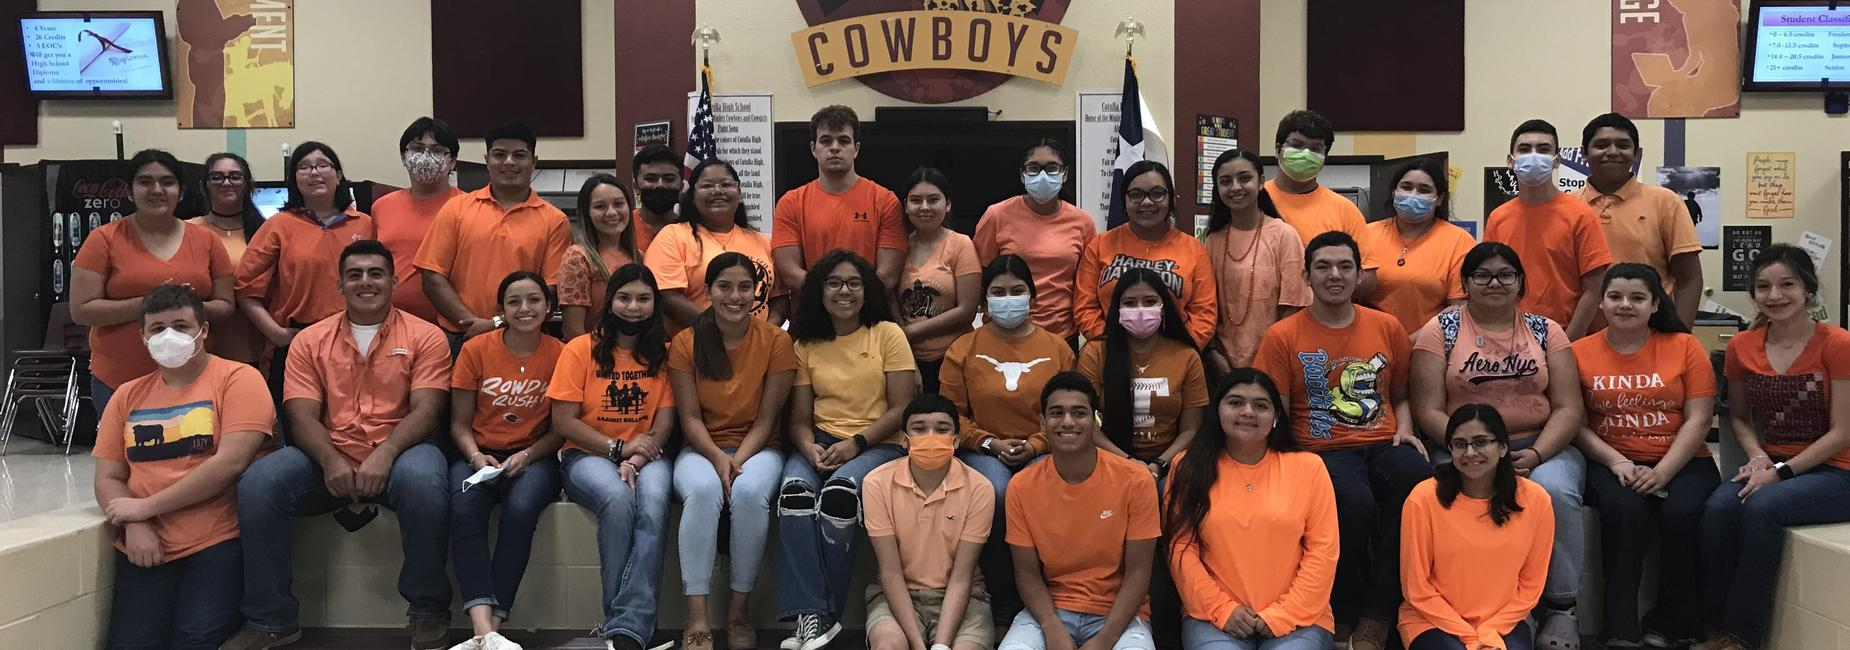 CHS Students wearing orange for unity day